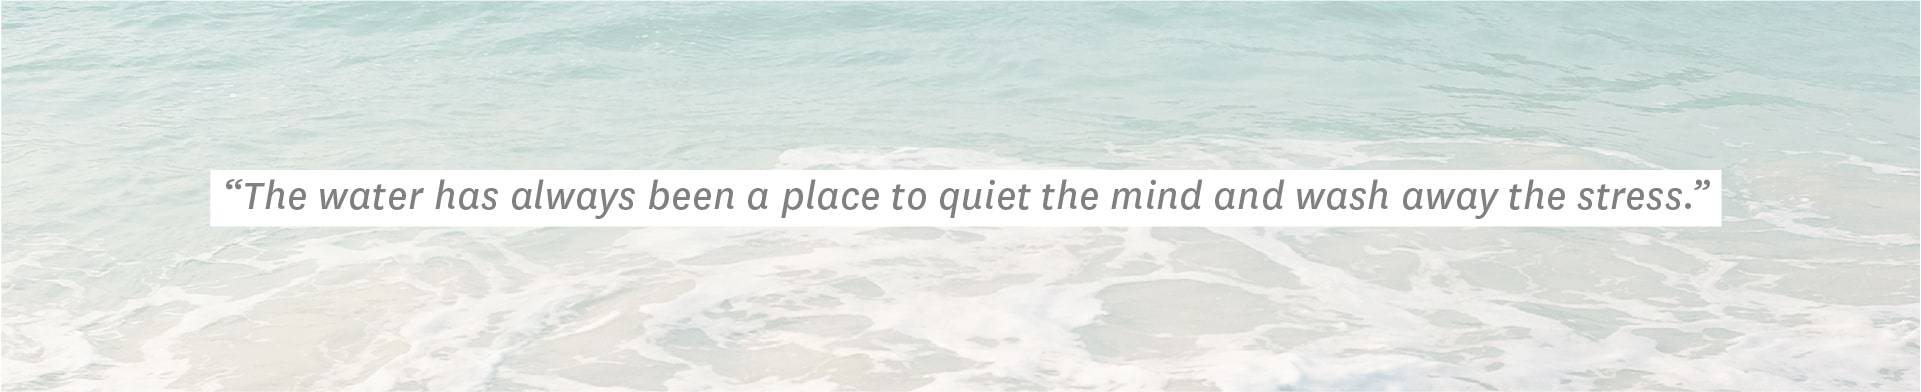 """The water has always been a place to quiet the mind and wash away the stress."""